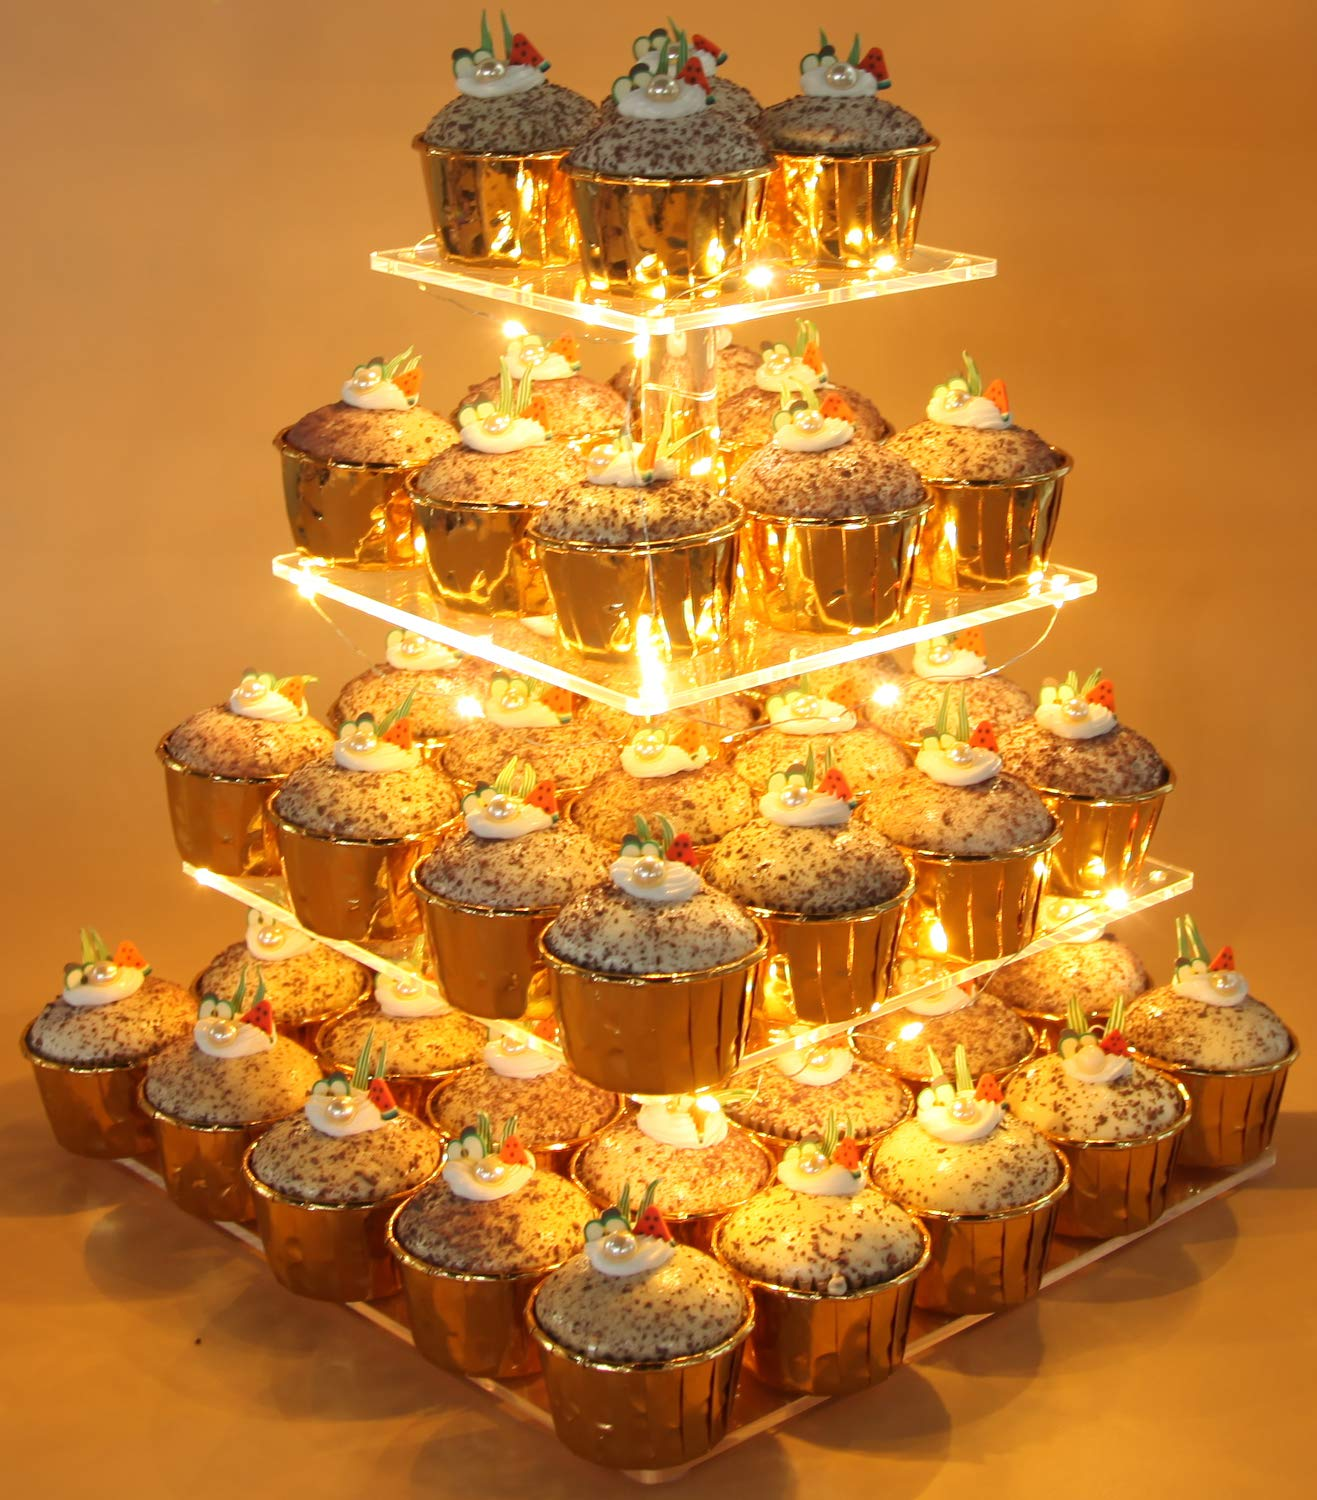 Vdomus Pastry Stand 4 Tier Acrylic Cupcake Display Stand with LED String Lights Dessert Tree Tower for Birthday/Wedding Party (Warm) by Vdomus